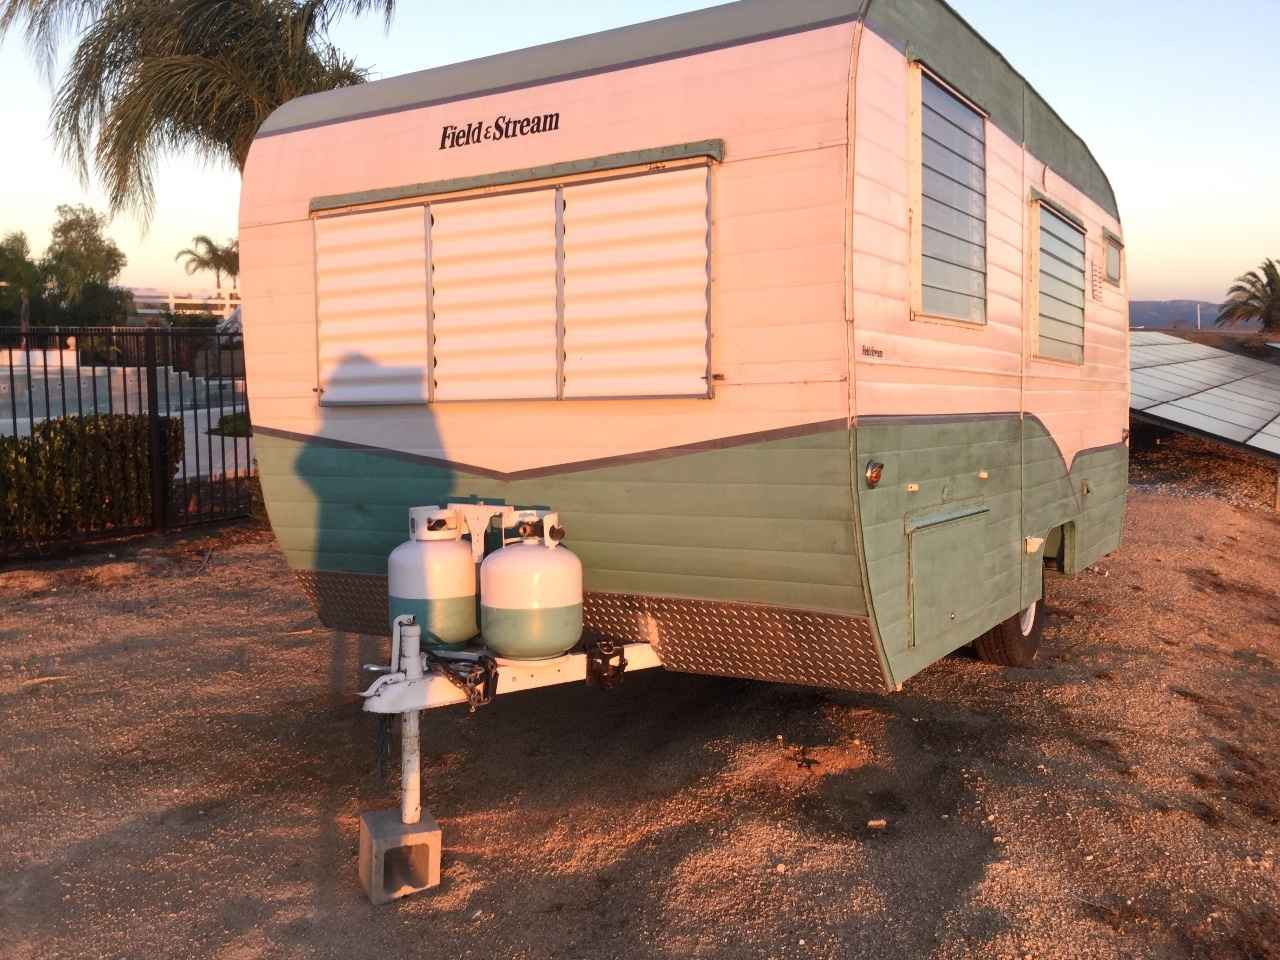 1957 Used Vintage Trailers OTHER Travel Trailer in California CA